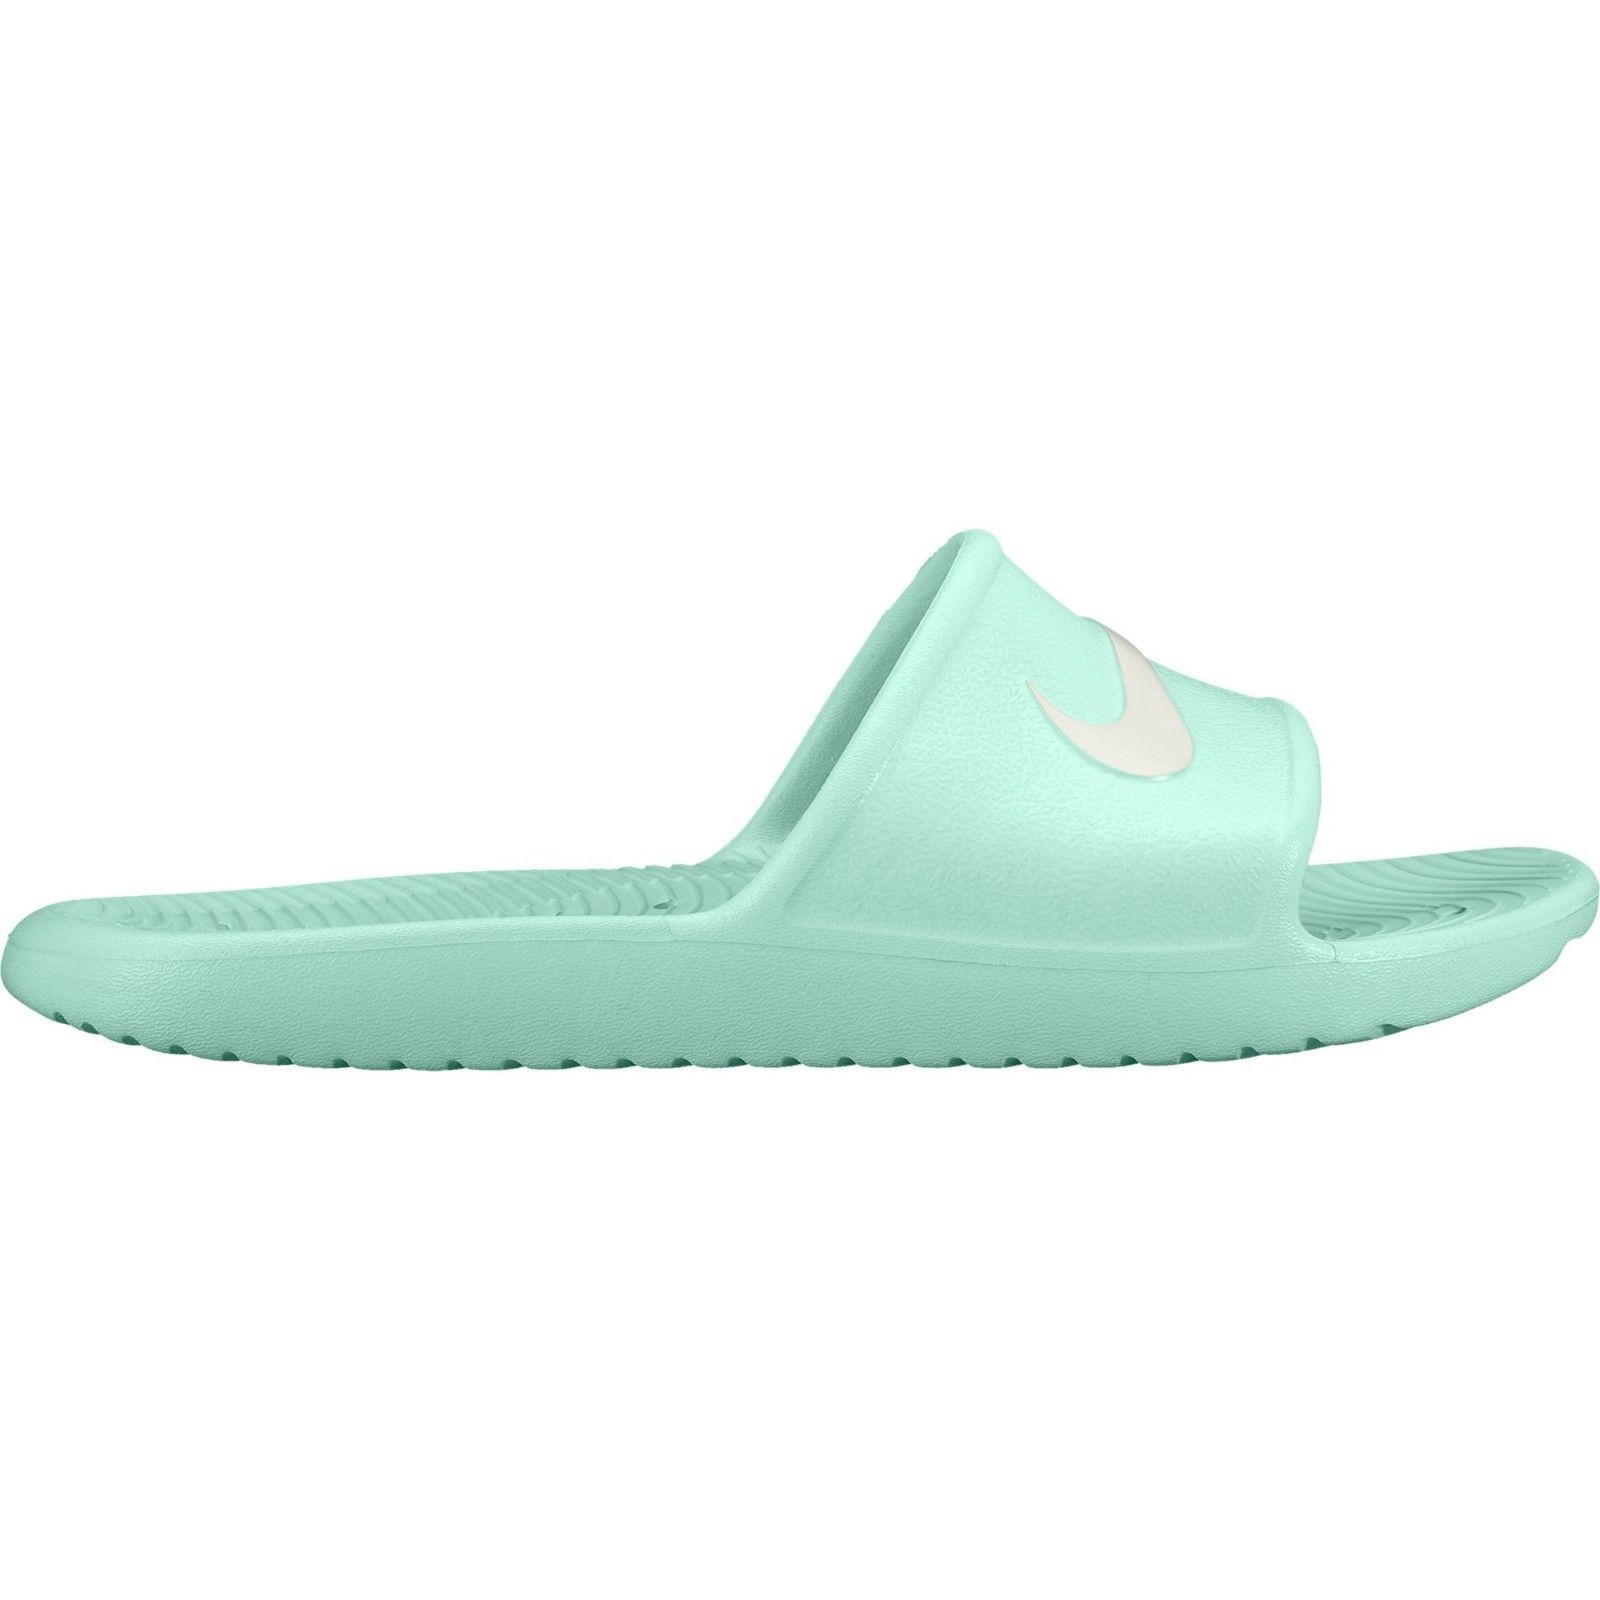 f72e1ebc08e16 Nike Women s Kawa Shower Slides Sandals Beach Shoes Flip Flops 832655-301 -   29.93